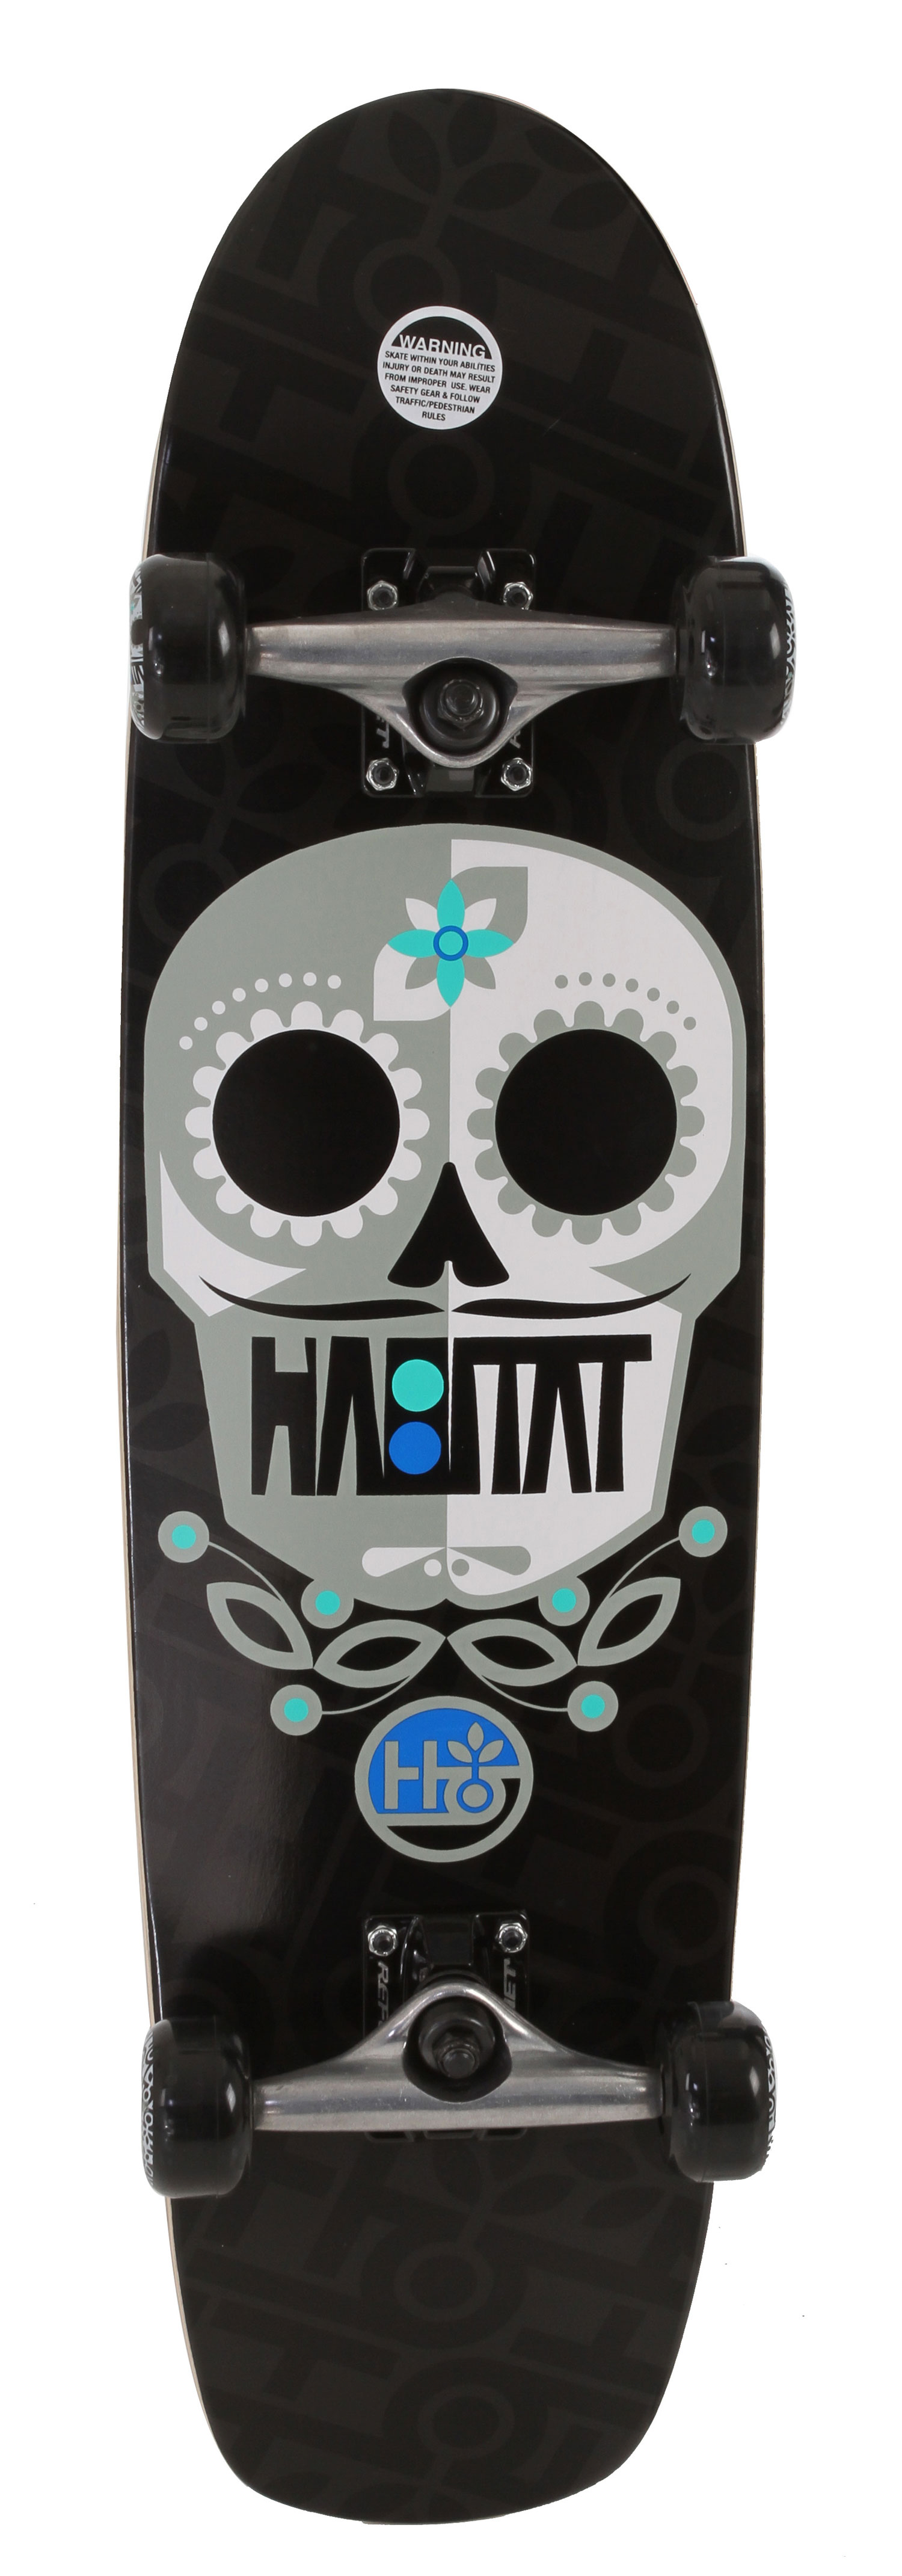 Skateboard Key Features of the Habitat Sugar Skull Large Longboard Complete: Reflex Abec 3 Bearings Reflex Hornet Trucks 56mm/78A Durometer Wheels - $69.97